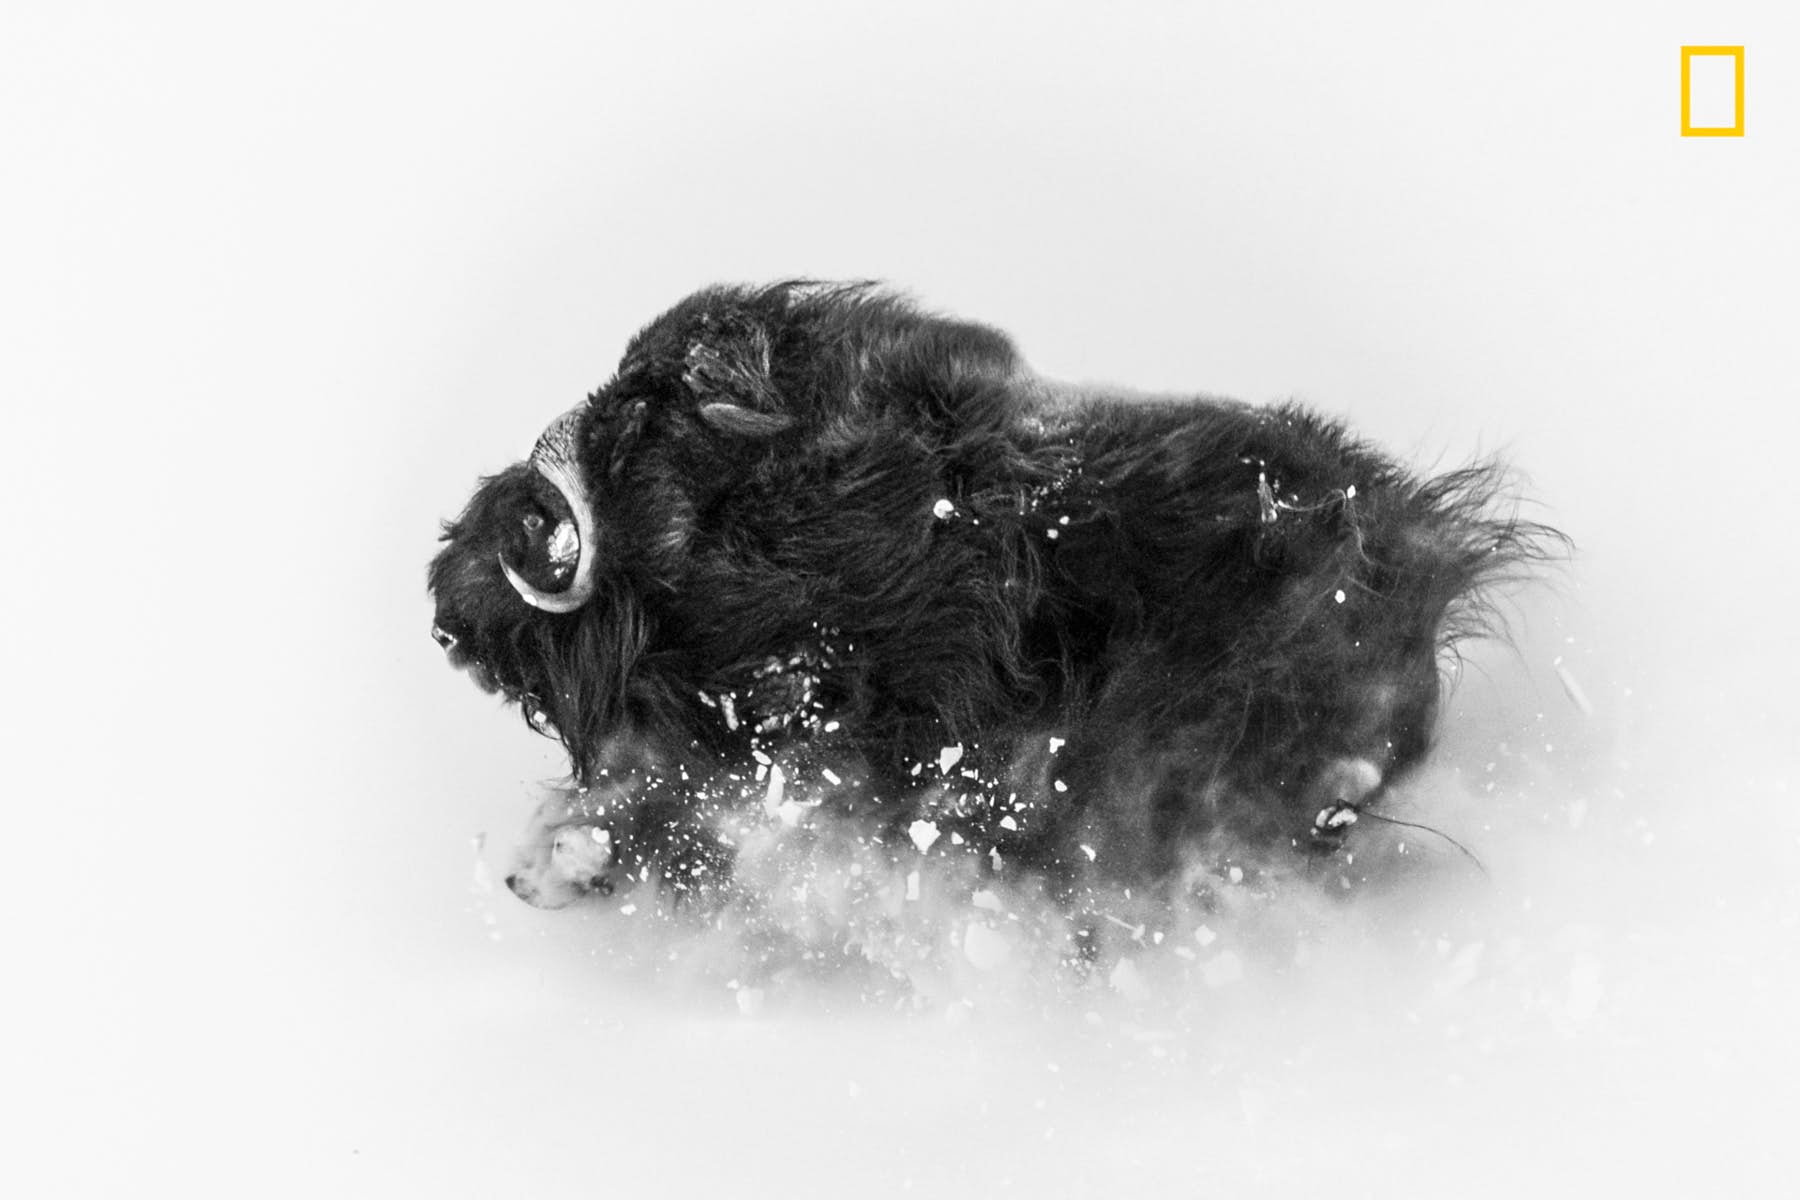 """Jonas Beyer won second place in the Wildlife category with this picture of a musk ox running on a hillside in deep snow. The image was take a few miles from Qaanaaq, in Greenland. """"Musk oxen are extremely tough Arctic survivors,"""" Jonas Beyer said. """"This photo shows their beauty and their power"""". Image courtesy of Jonas Beyer/2018 National Geographic Photo Contest"""